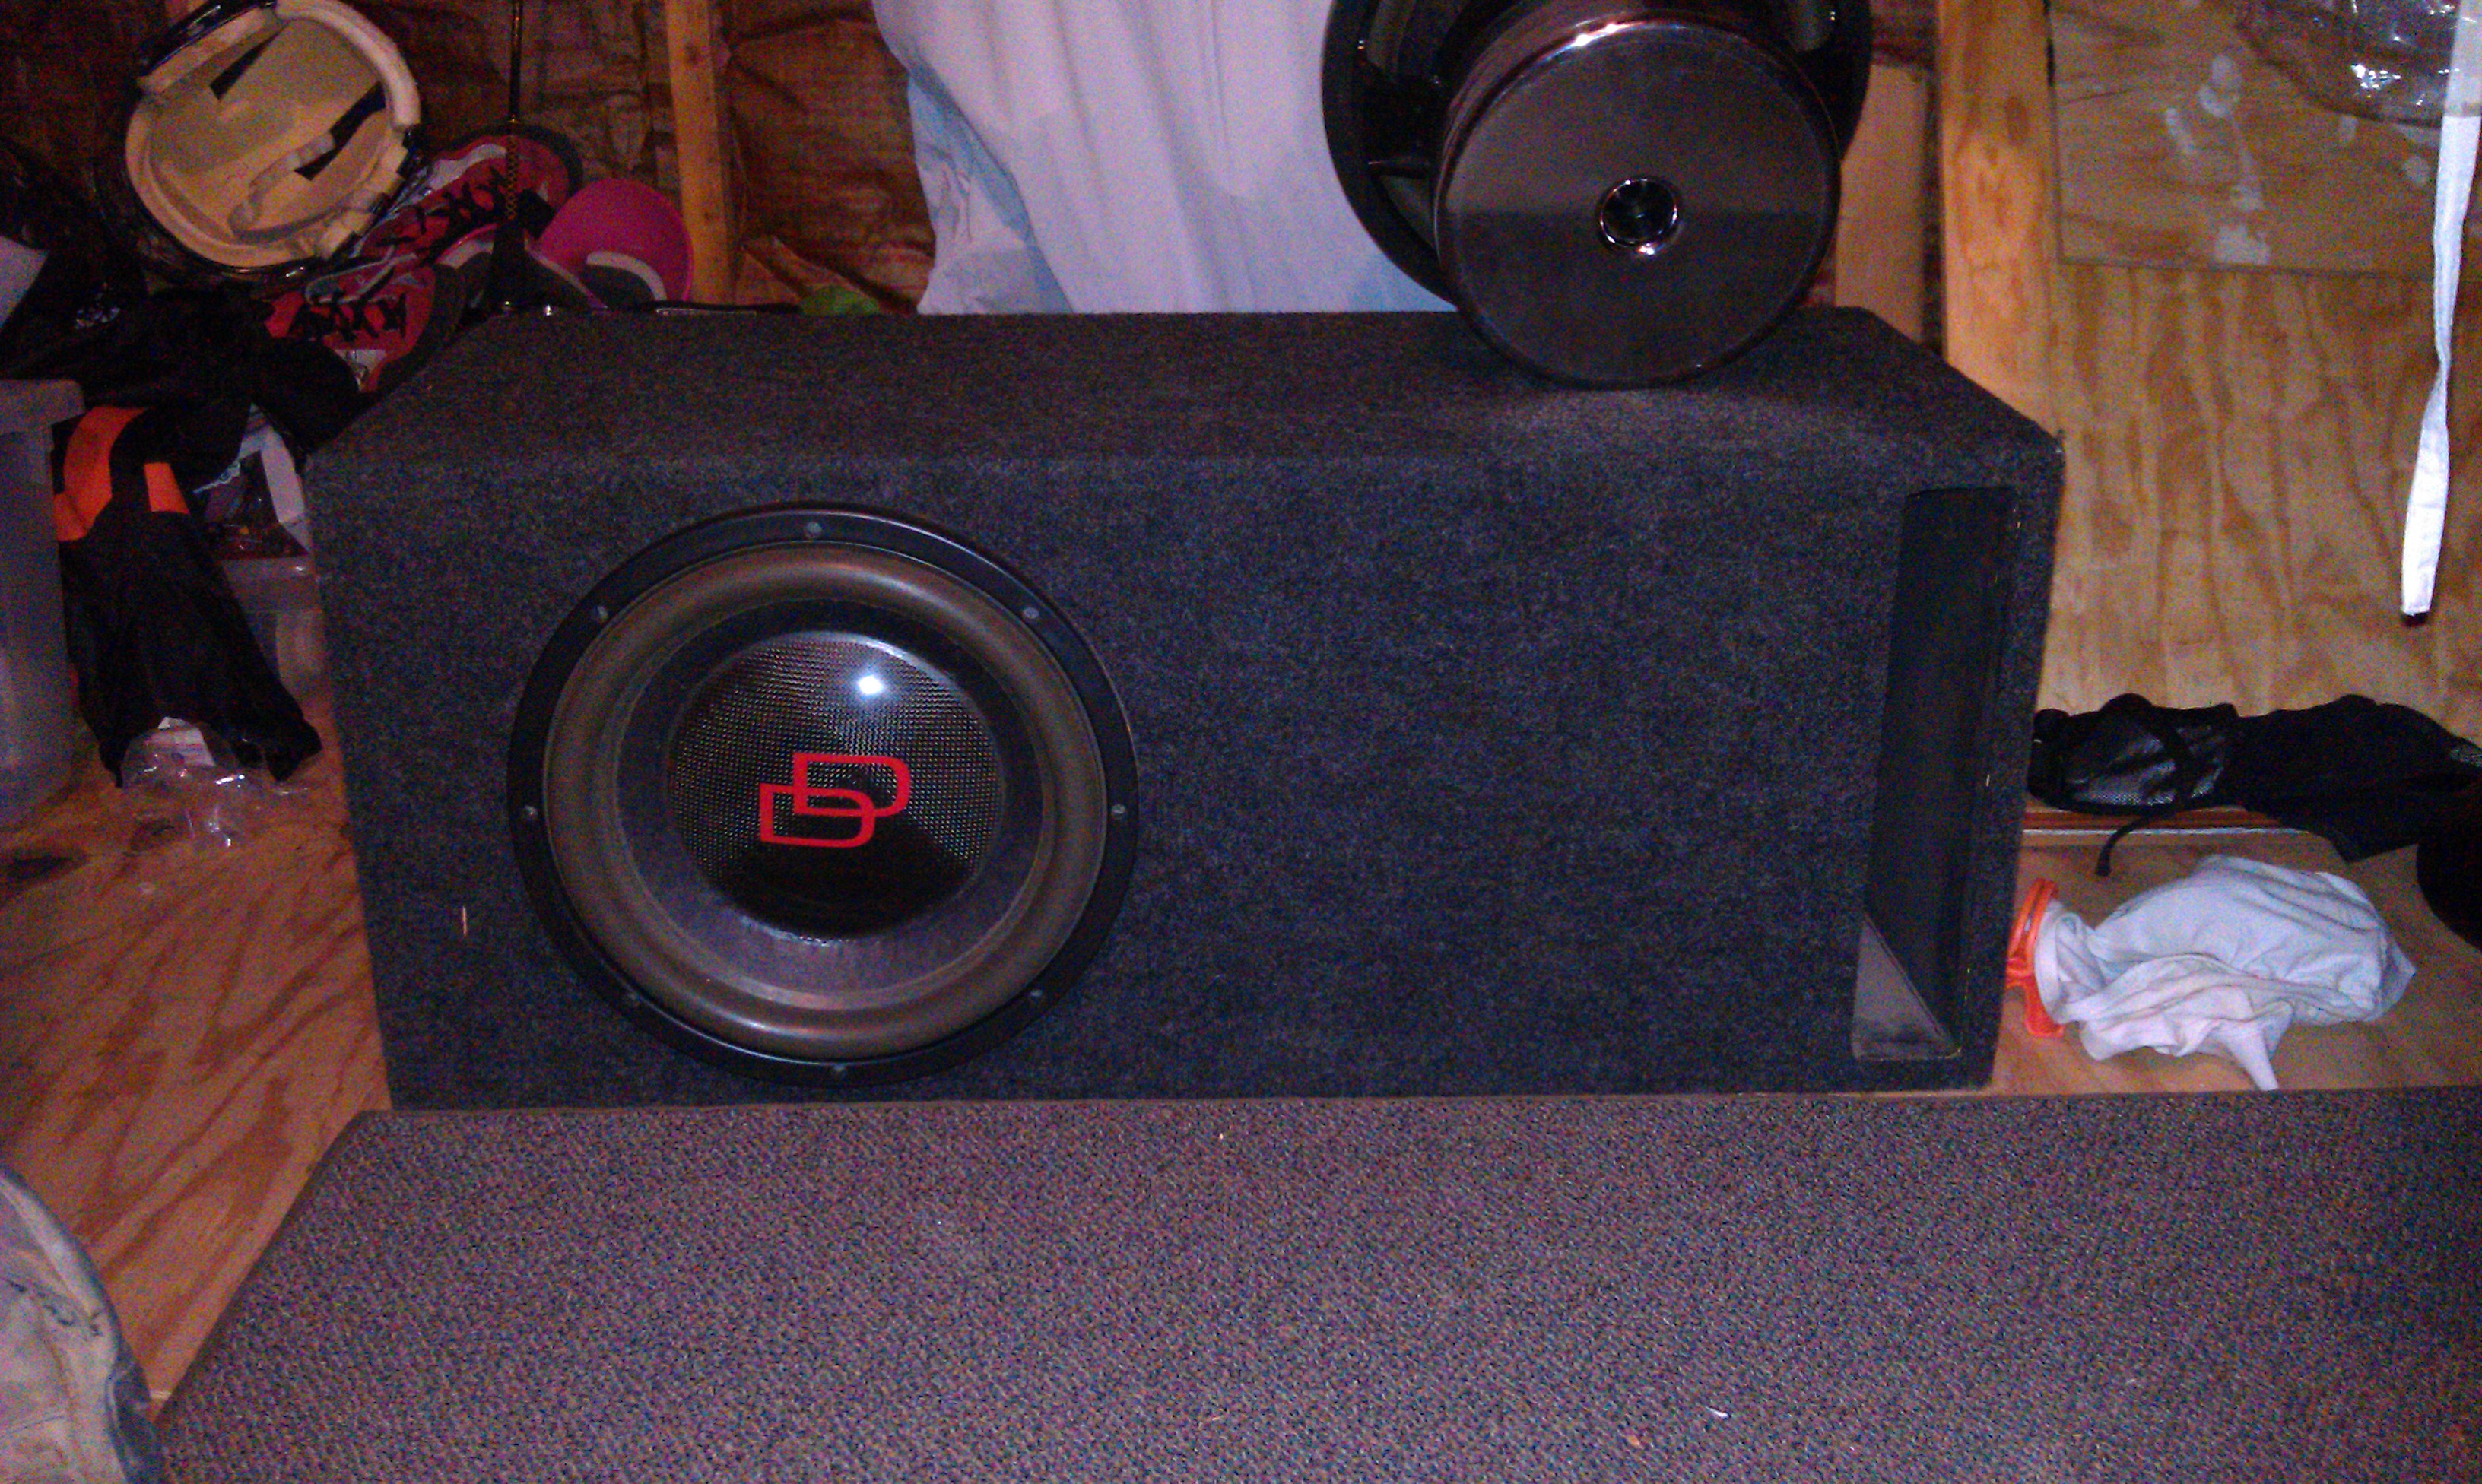 Alto Falante Subwoofer Dd Audio 800 Rms 15 Polegadas Dd1515 also Scanspeaktroels gravesen elipticor1 together with 403615 370647416 furthermore 12 1000 1100 1200 1500 2200 2600 3200 Rms together with 4274625. on digital designs 12 subwoofer